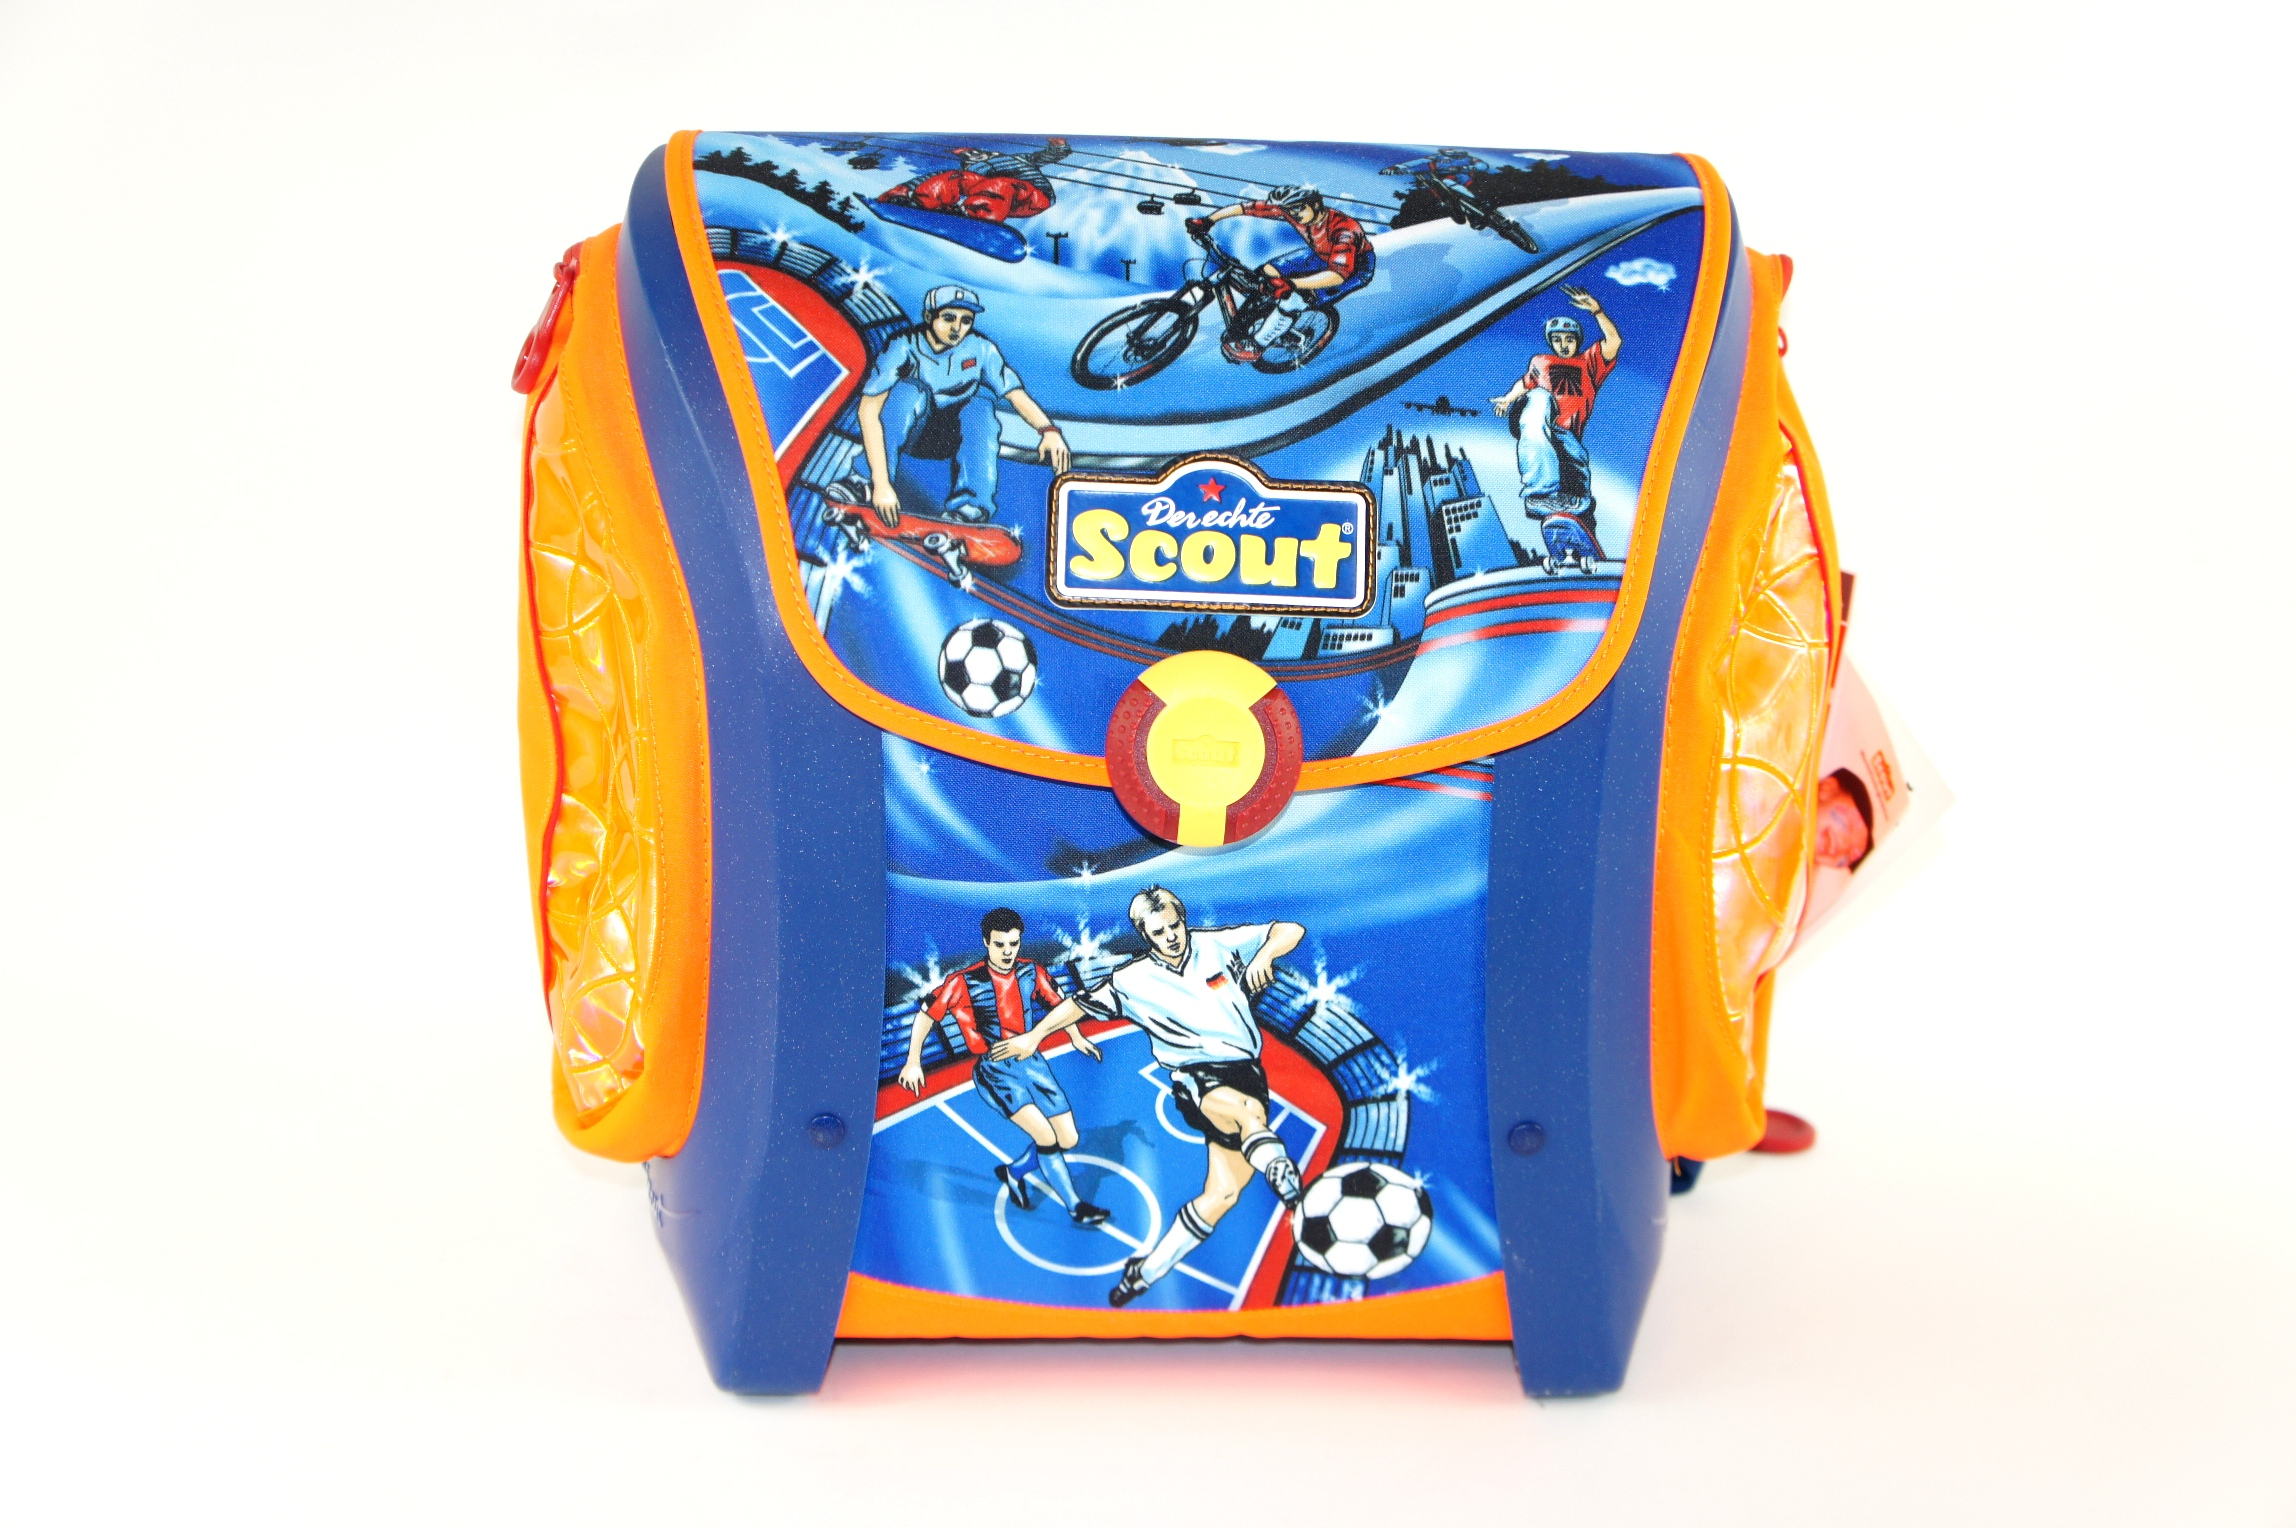 neu scout mega friends sport fu ball skateboard schulranzen ranzen ebay. Black Bedroom Furniture Sets. Home Design Ideas